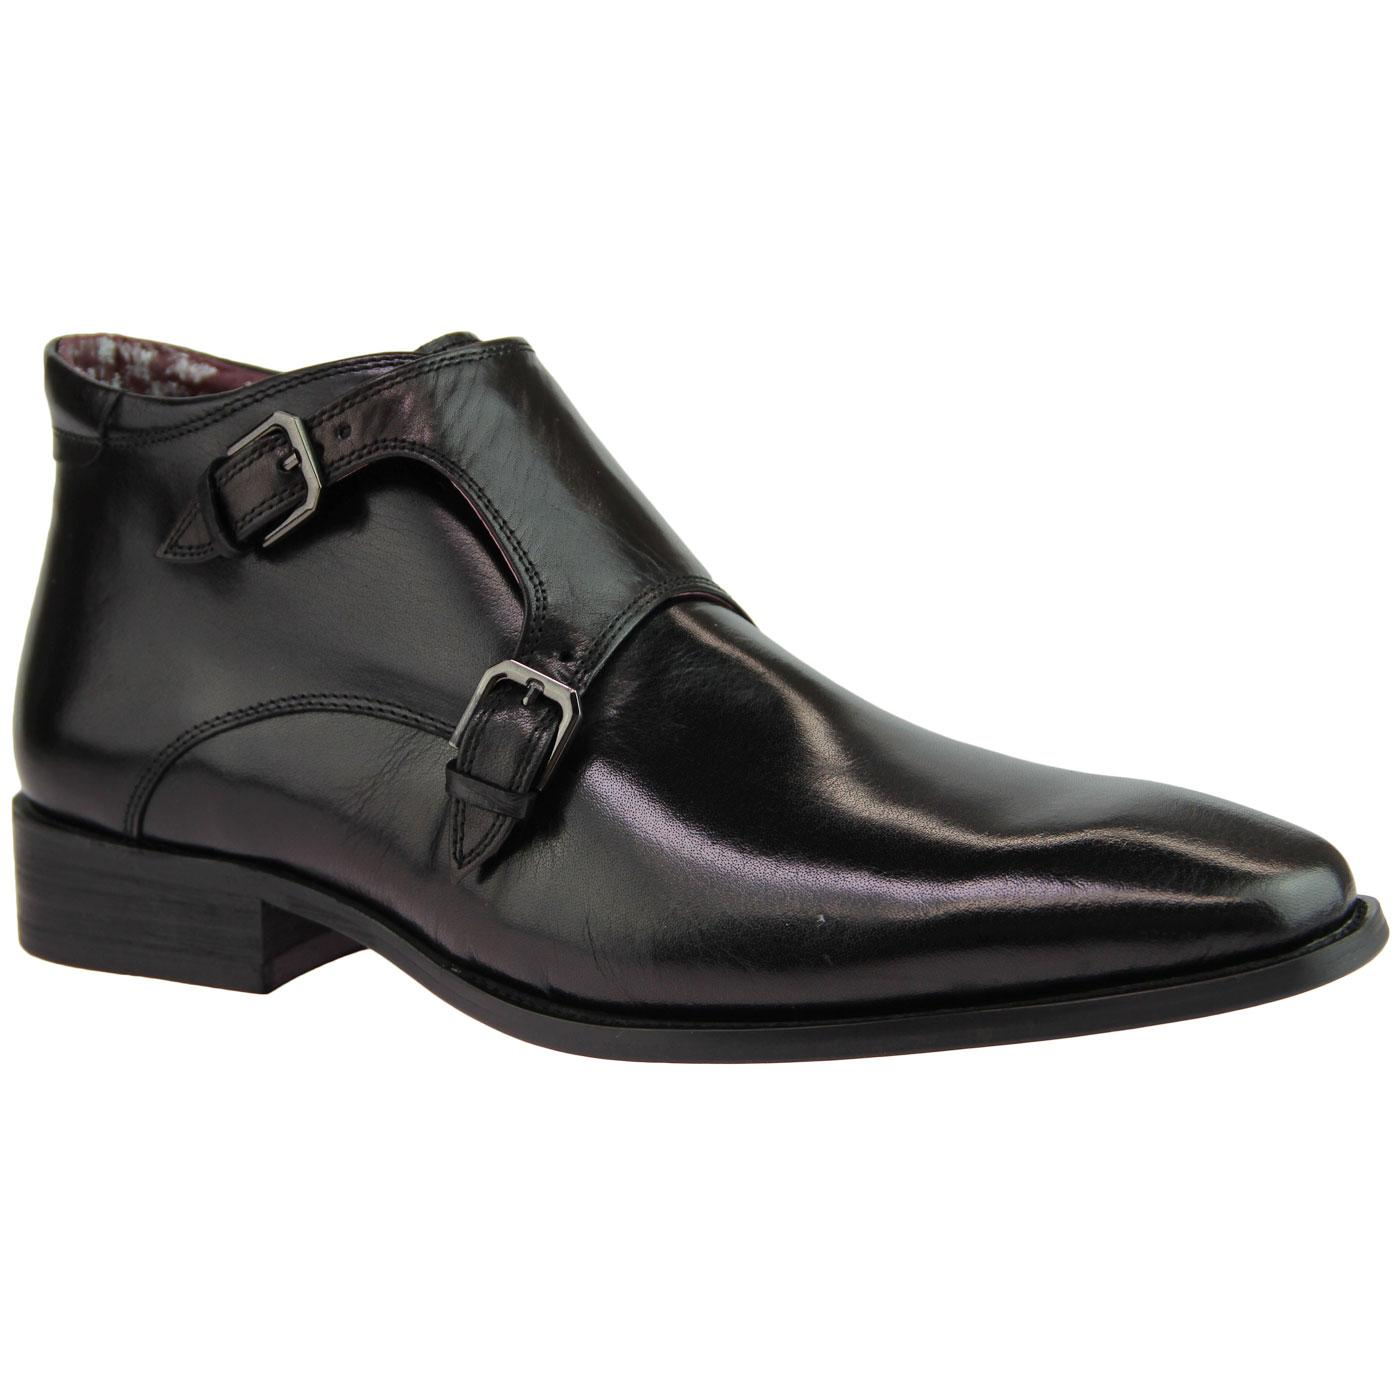 Swinford PAOLO VANDINI Monk Strap Ankle Boots (B)